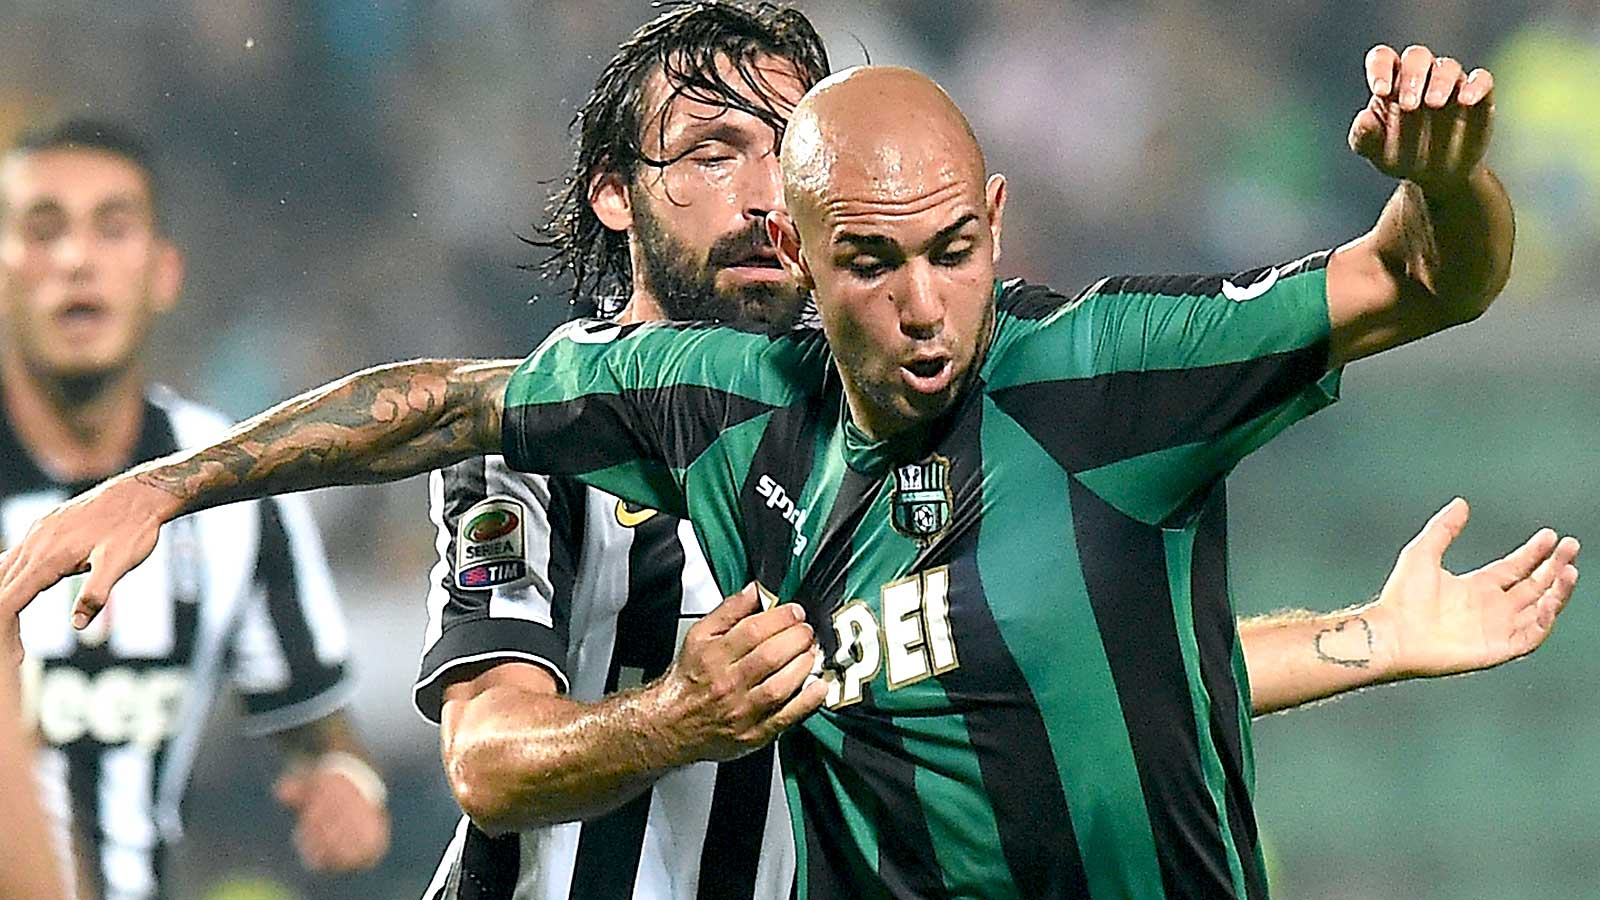 Juventus sign striker Zaza on five-year deal from Sassuolo